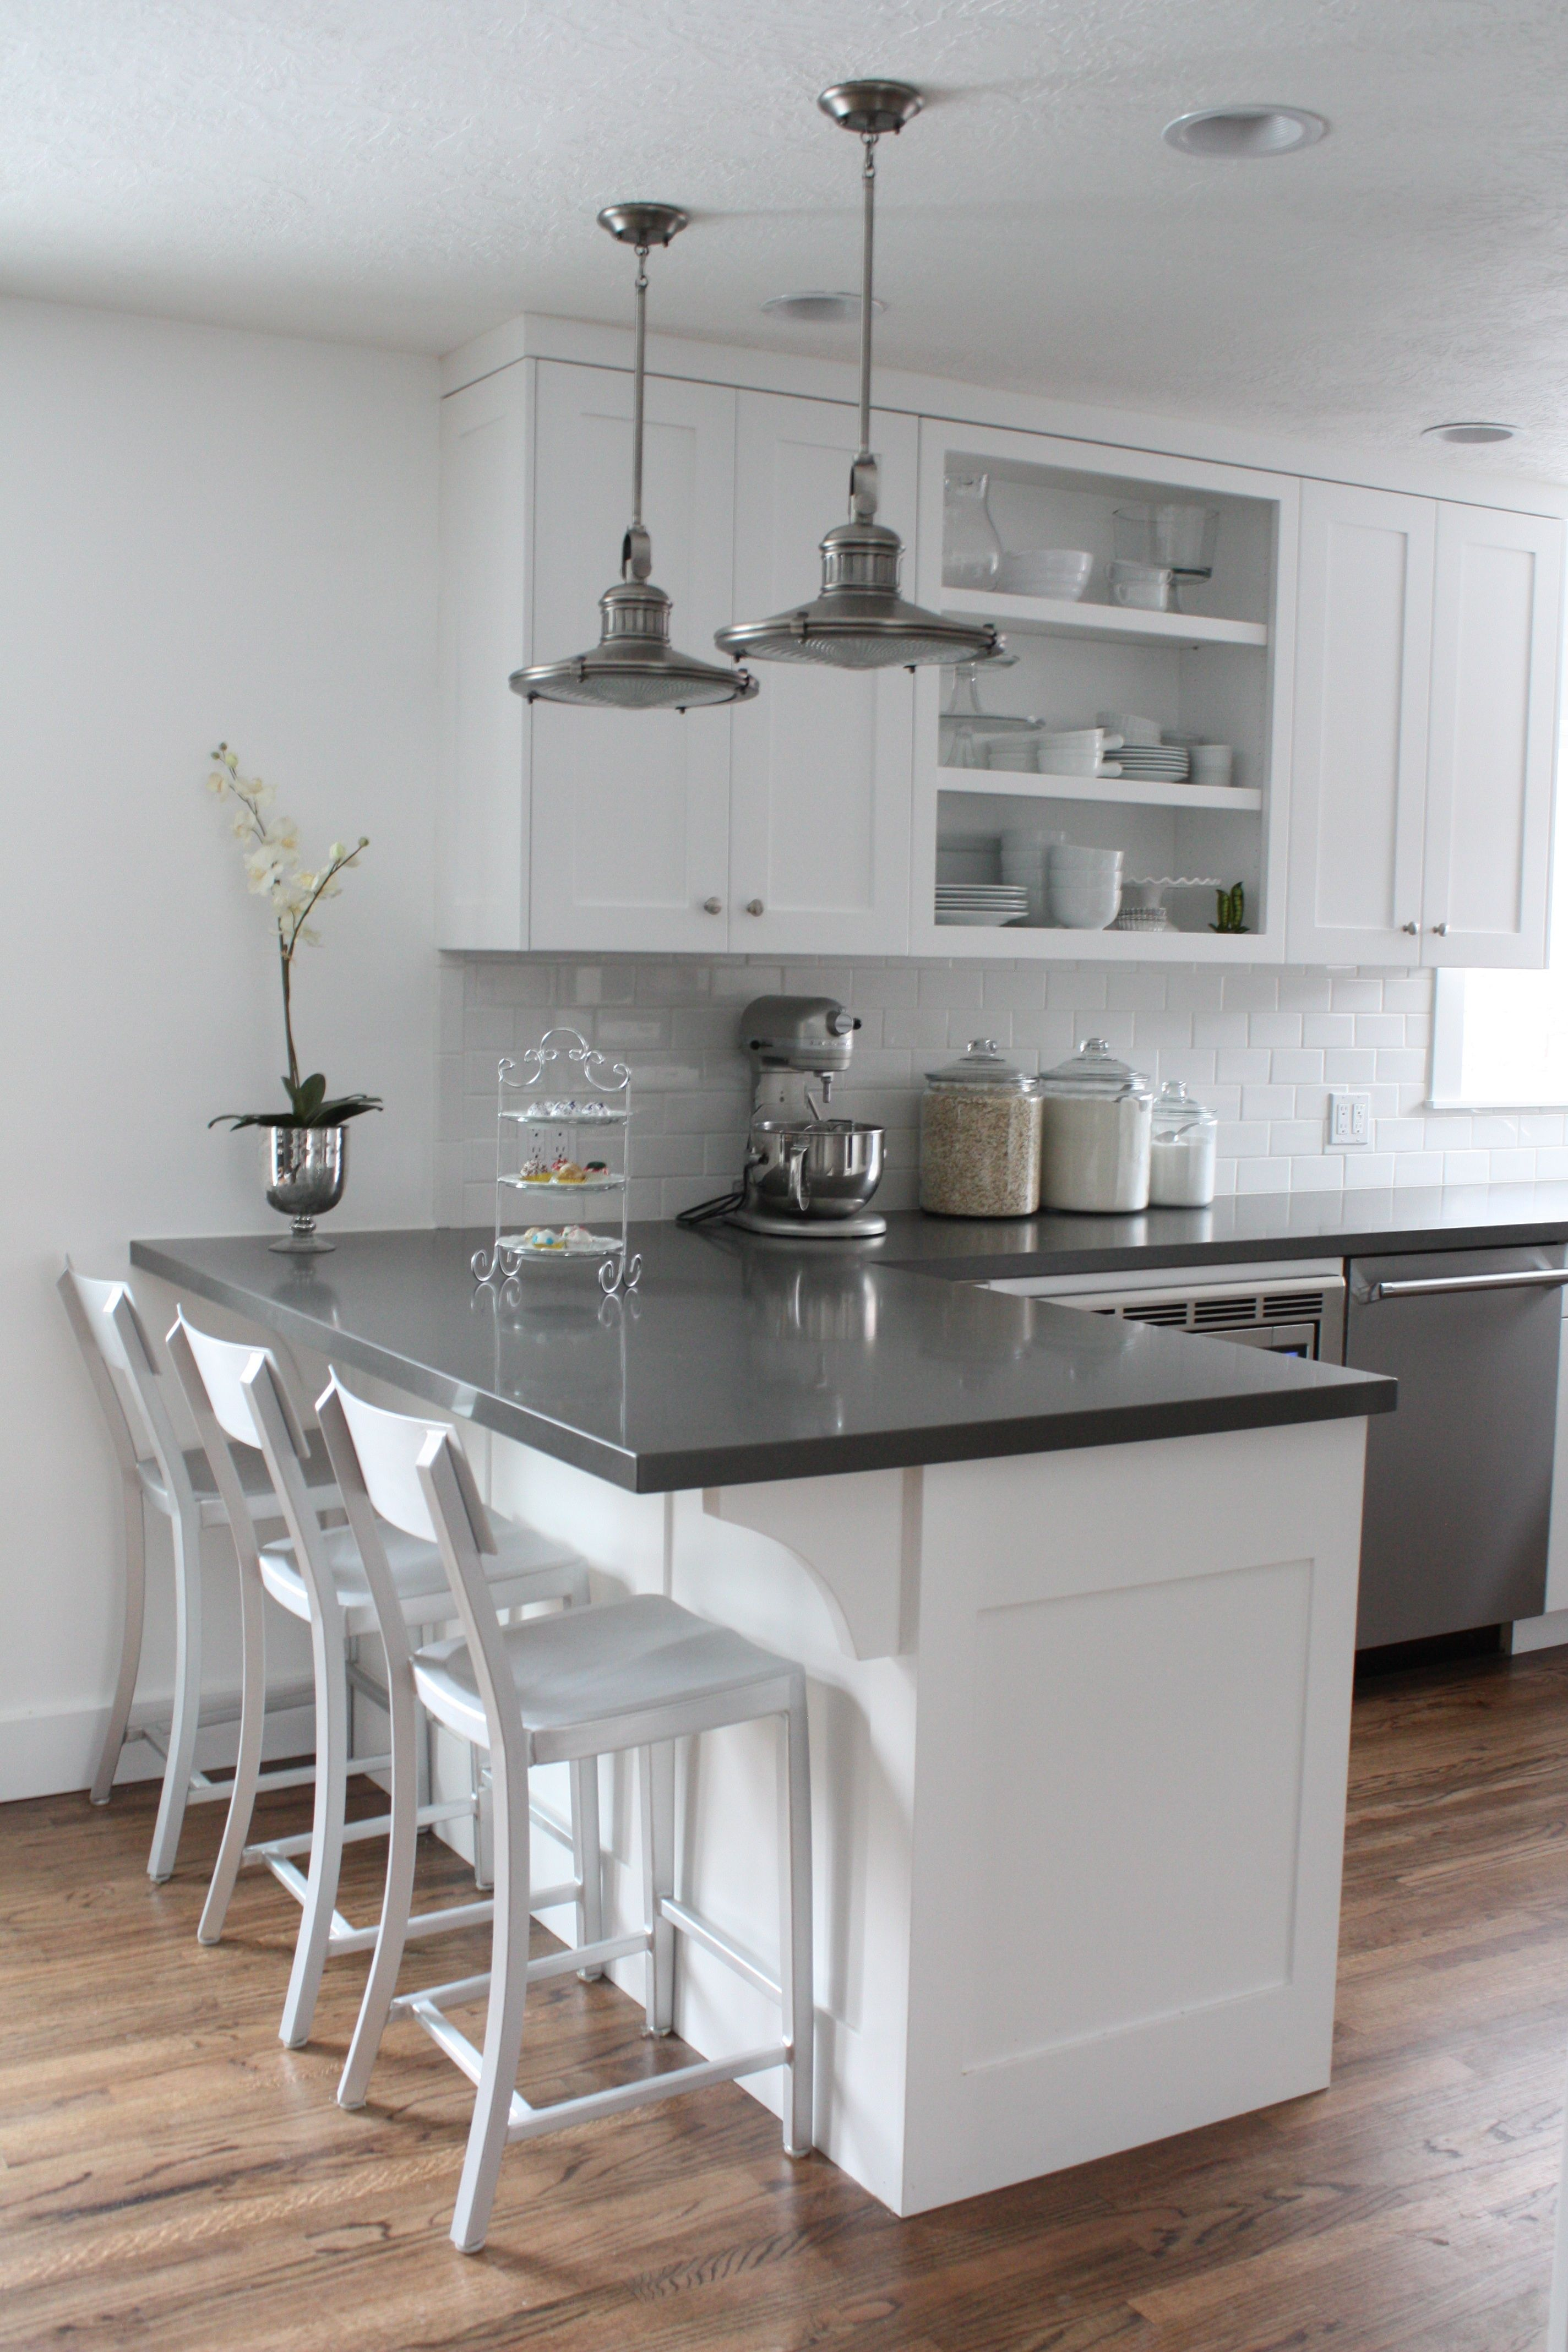 Kitchen Counter Refrigerator This Is It White Cabinets Subway Tile Quartz Countertops